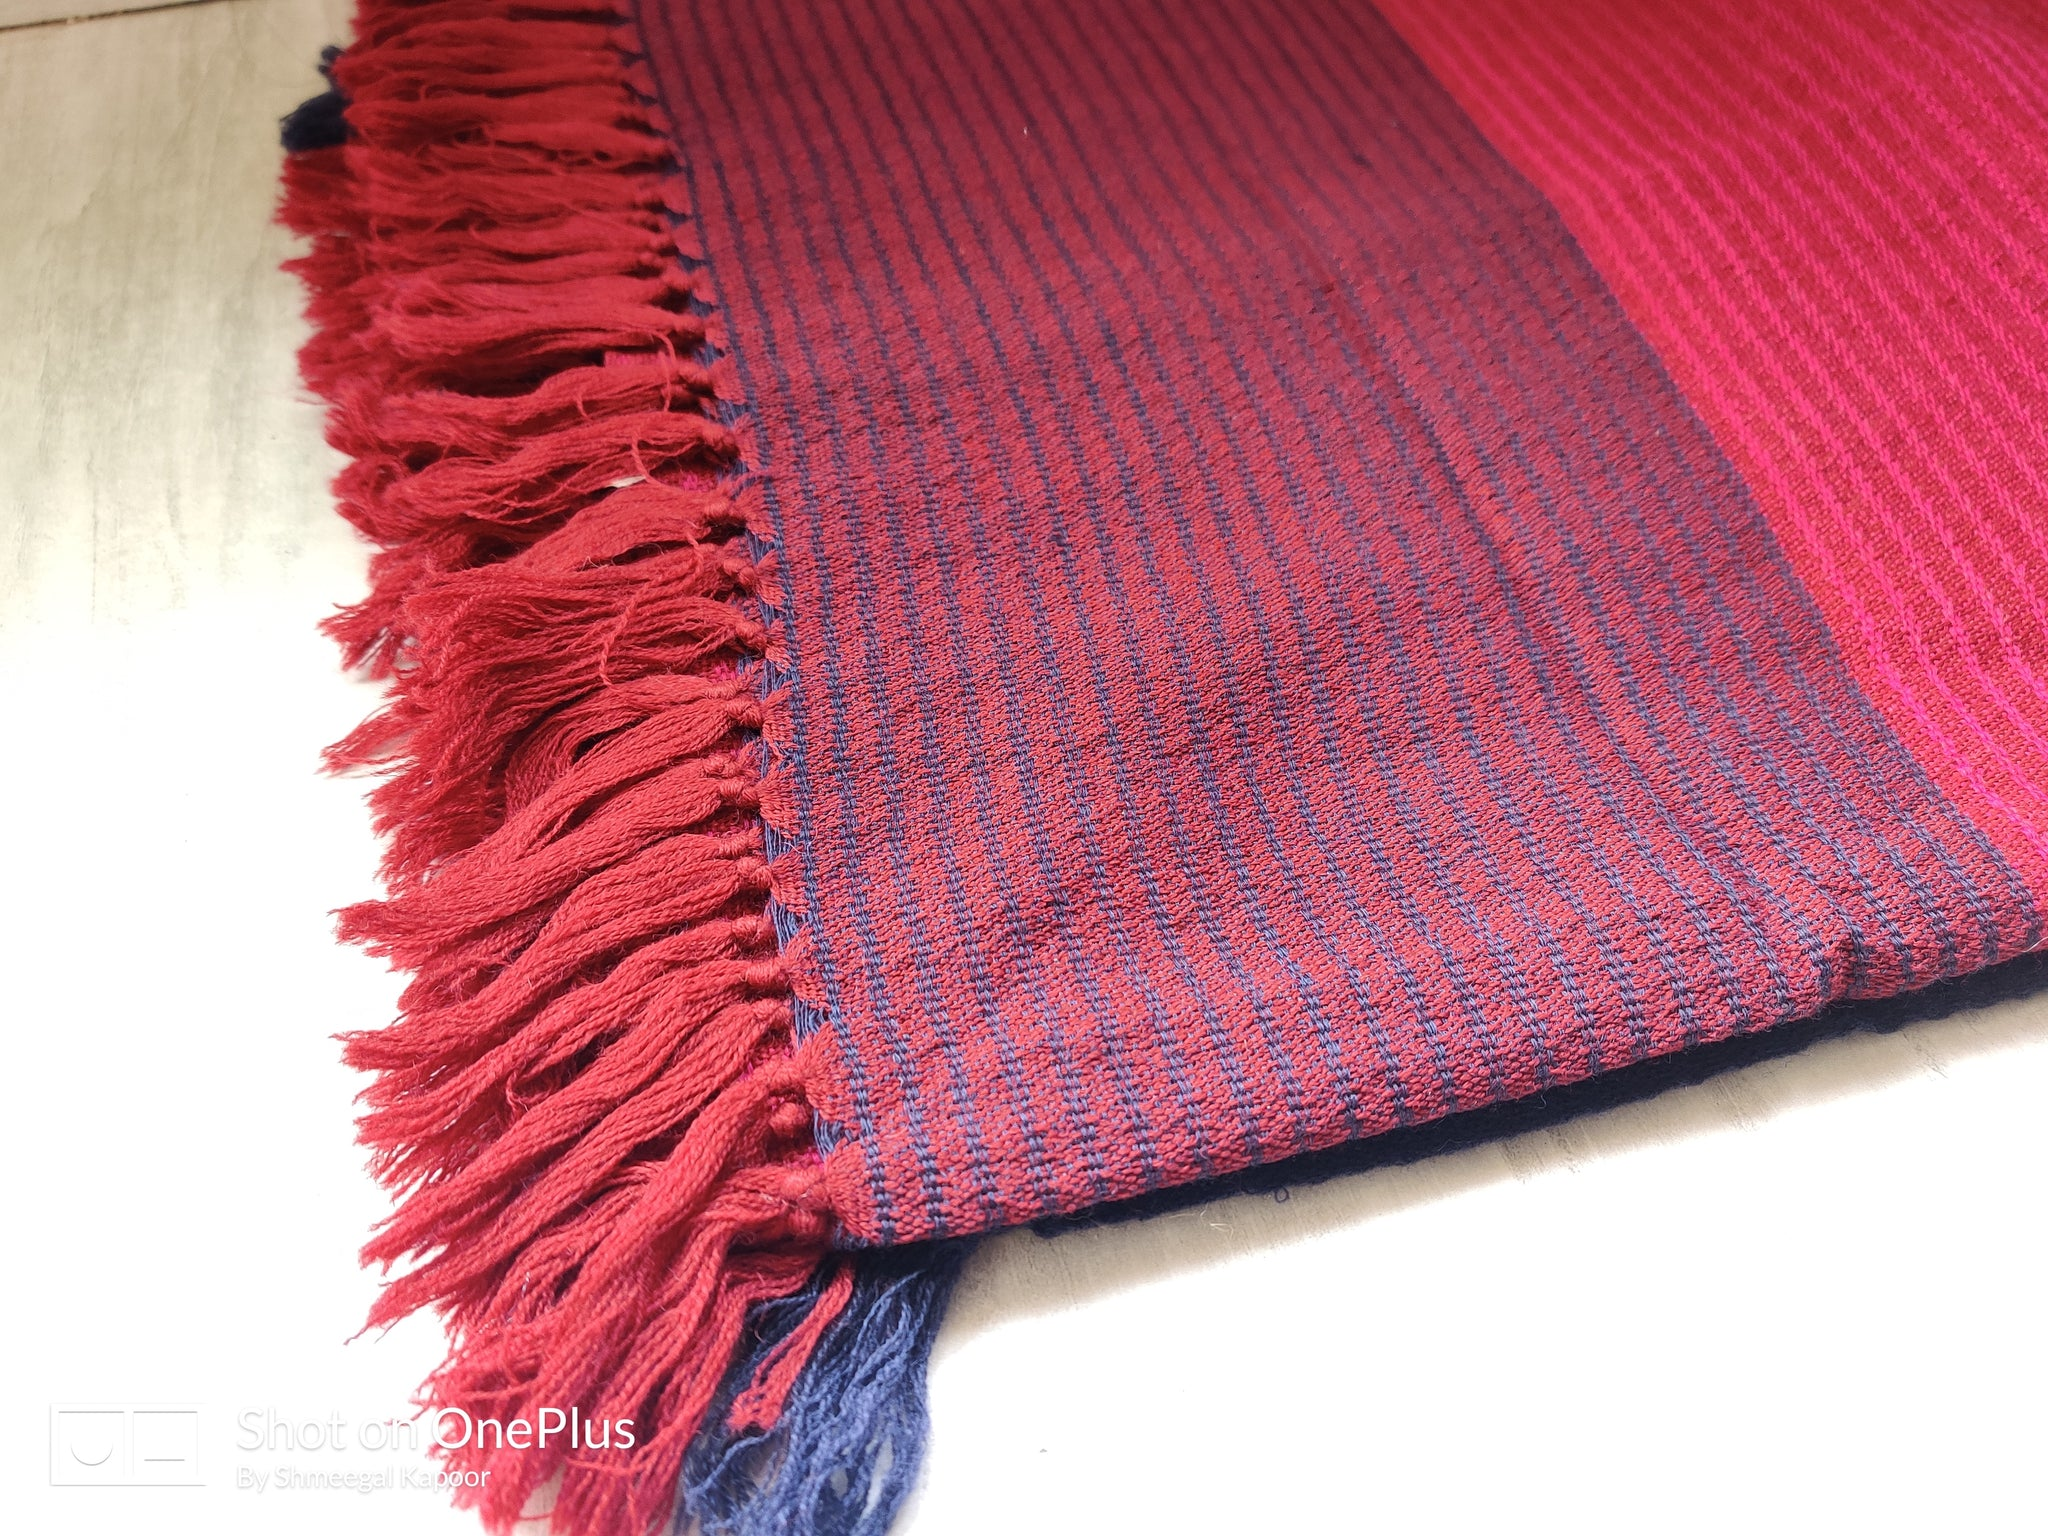 Criss cross red striped Woolen shawl